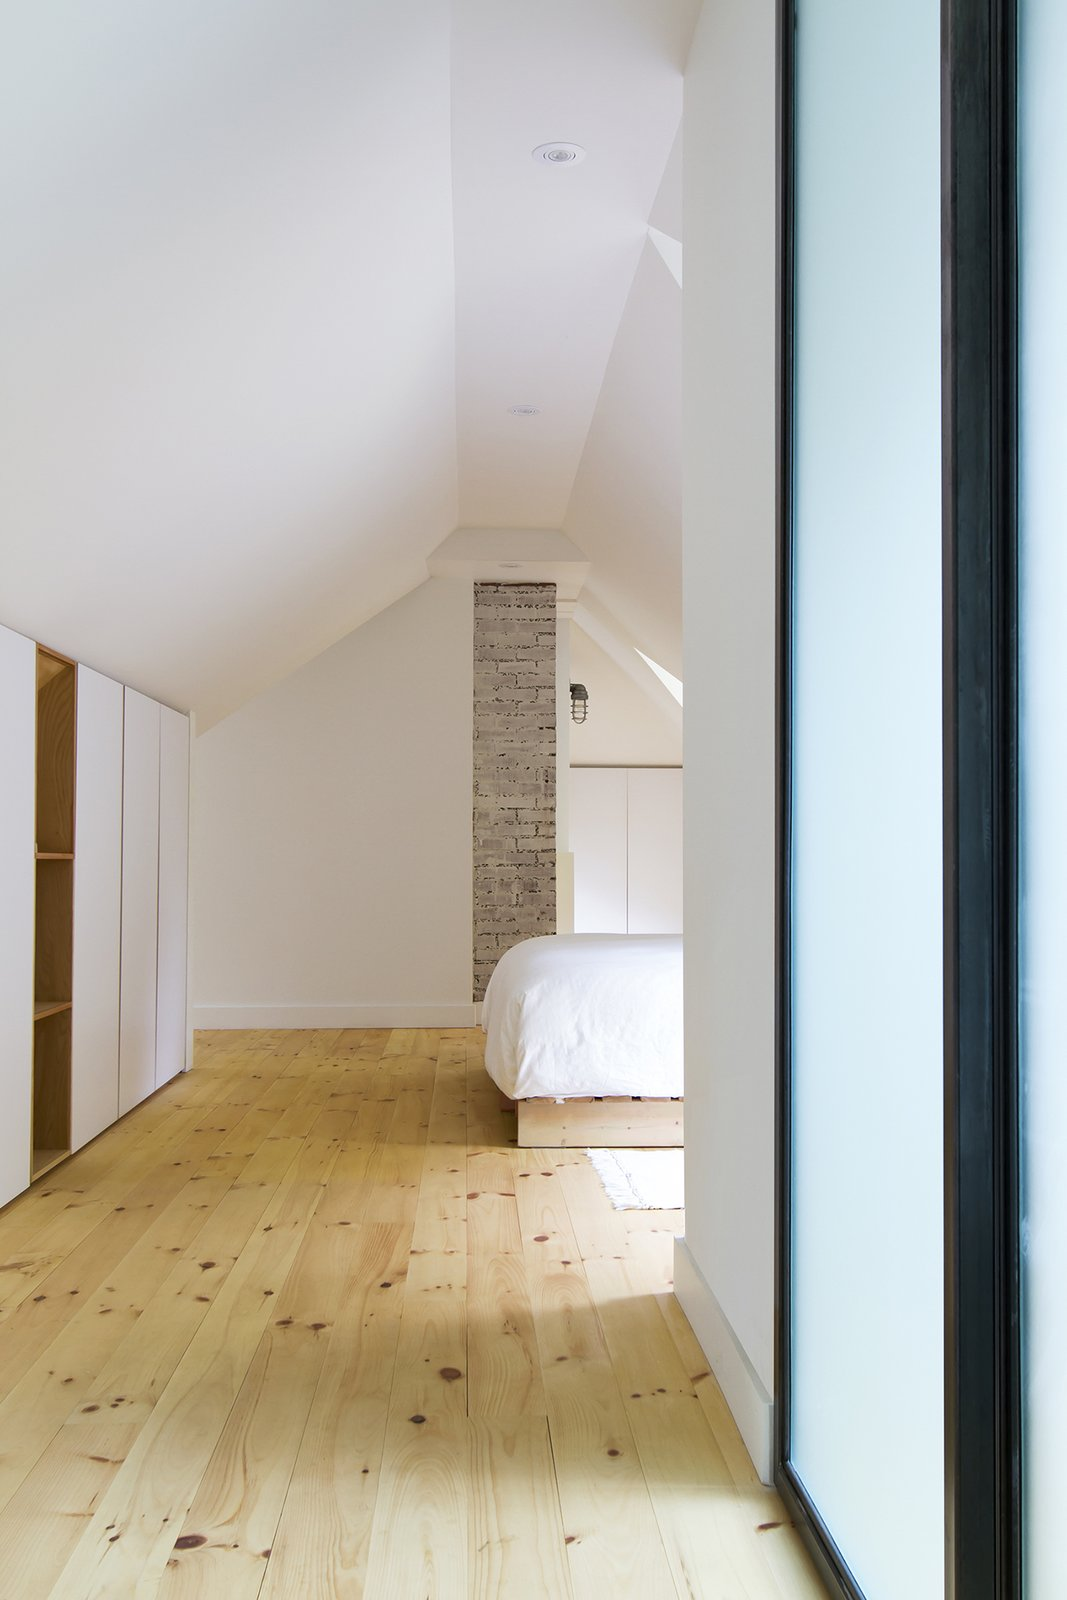 Bedroom, Wardrobe, Bed, Ceiling Lighting, Wall Lighting, and Light Hardwood Floor The master bedroom's simple design highlights the ancestral chimney.  L'Eau Vive by FÉLIX & Co.